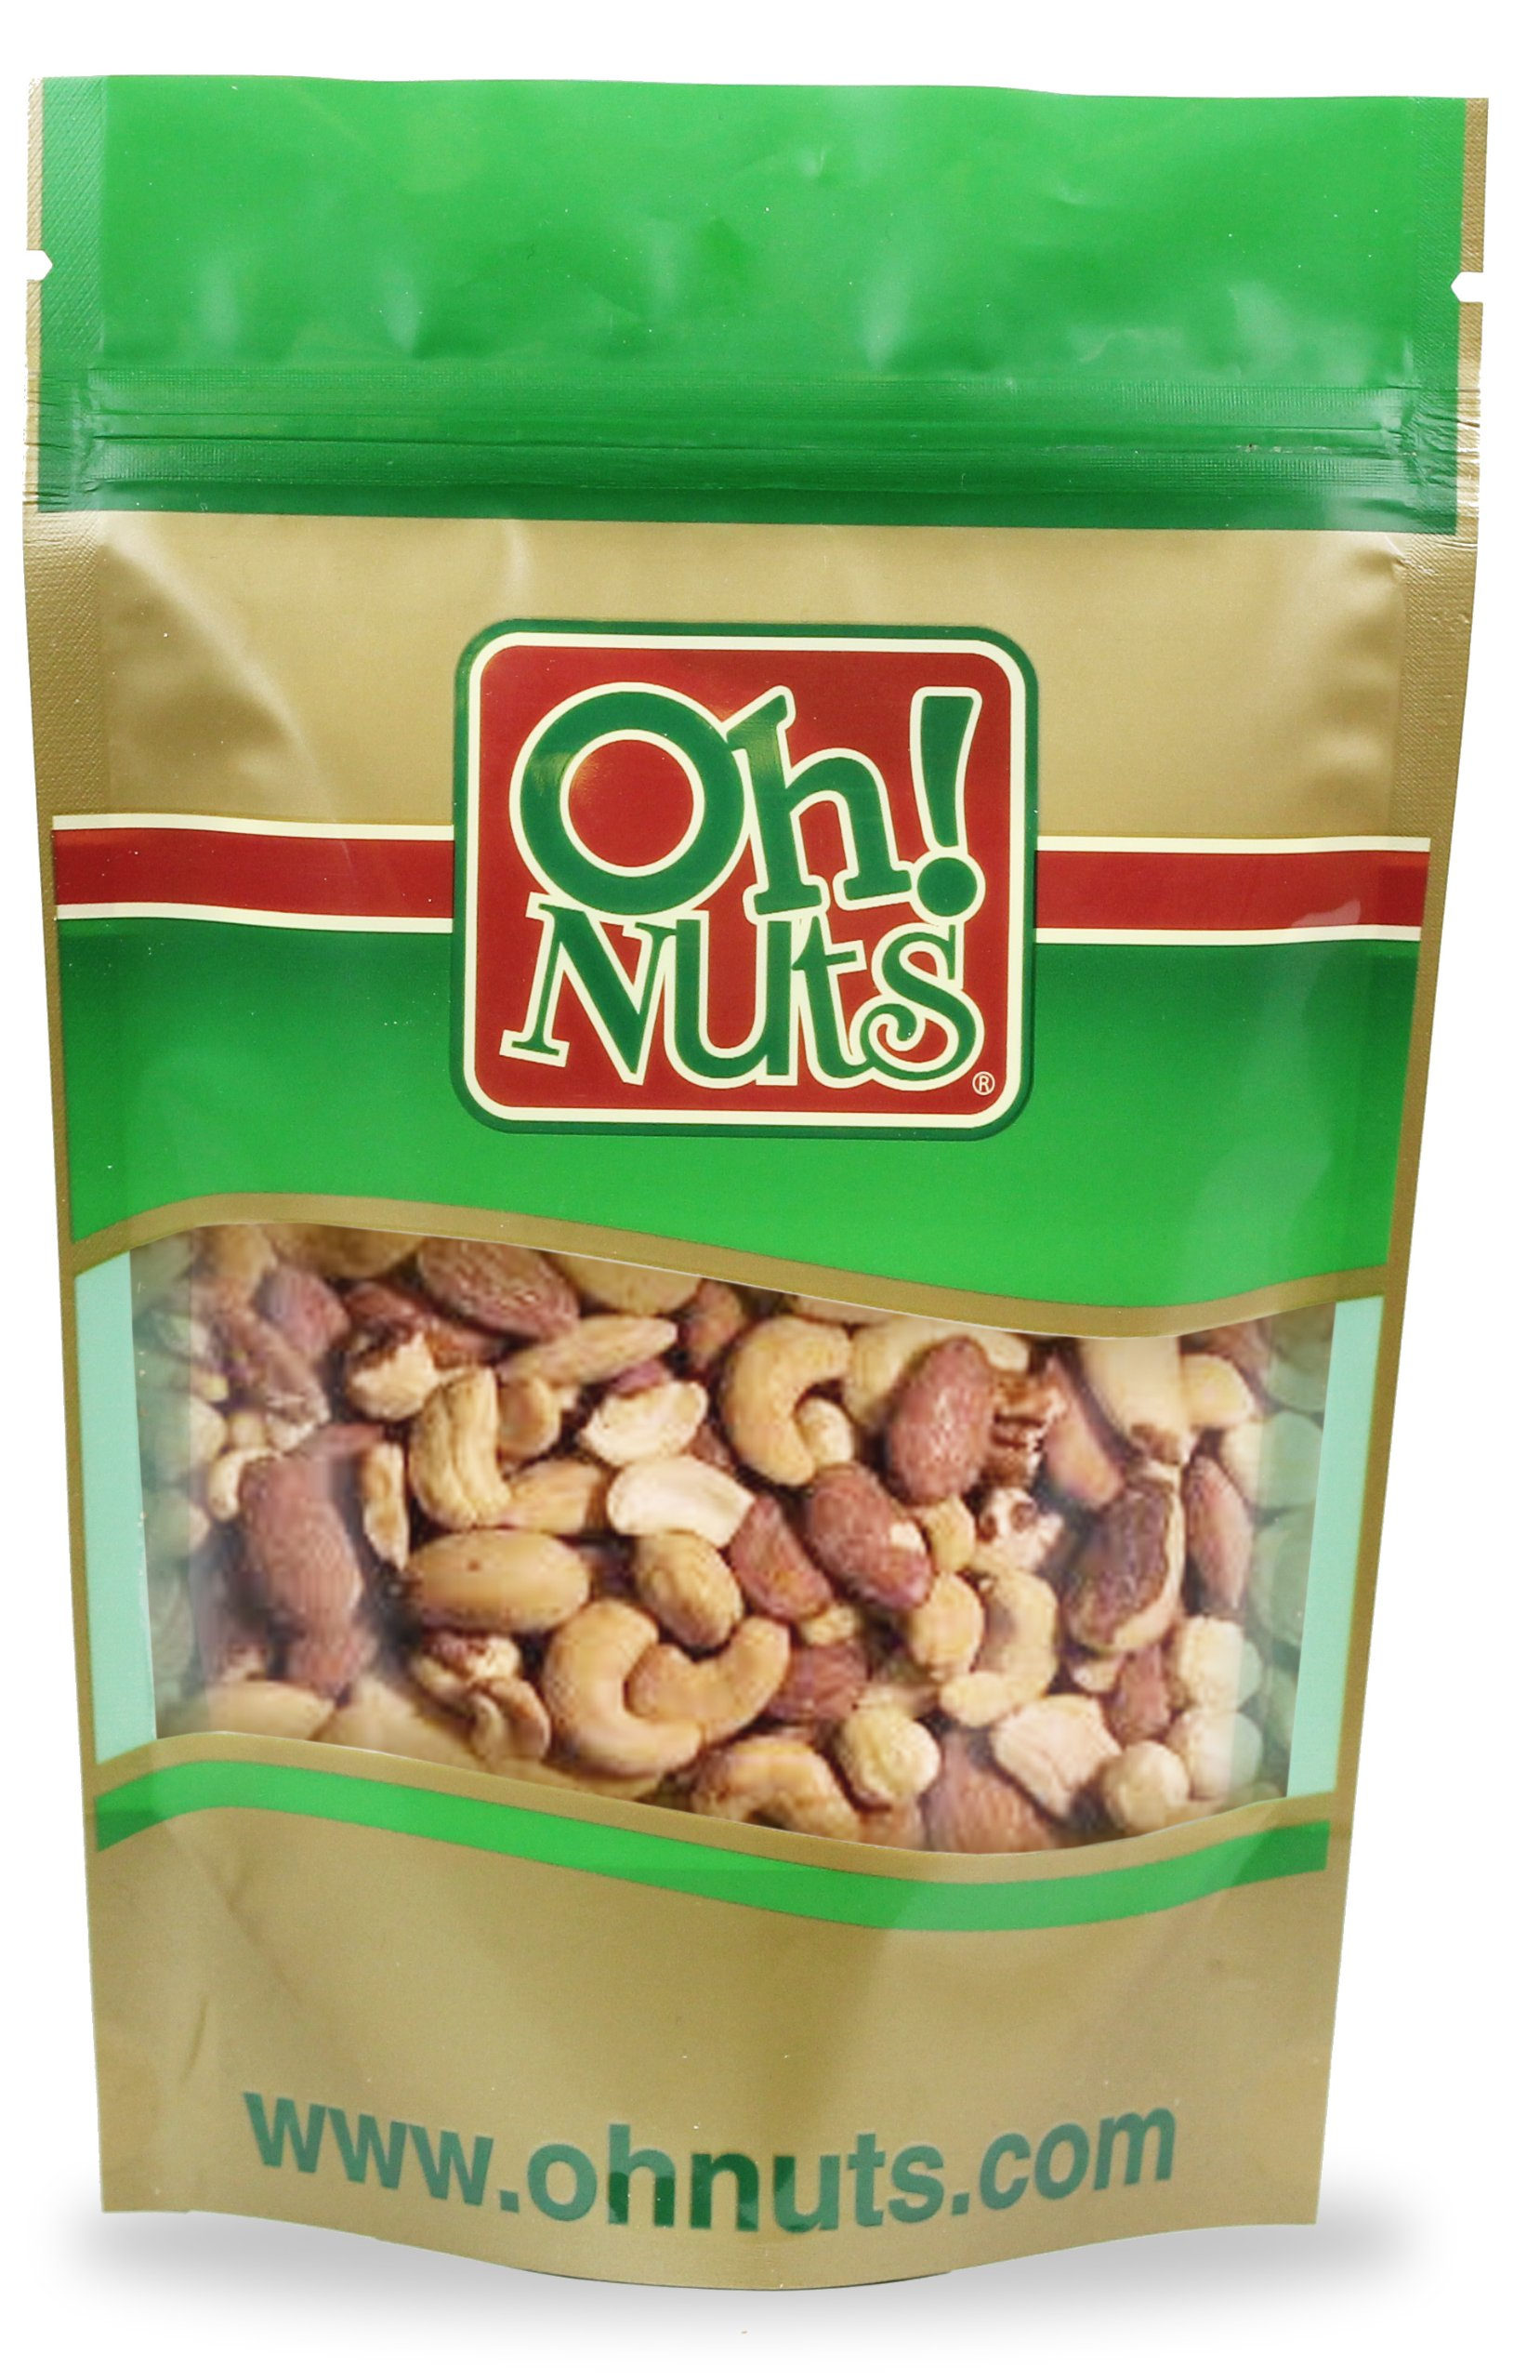 Mixed Nuts Roasted Salted (5 Pound Bag) - Oh! Nuts